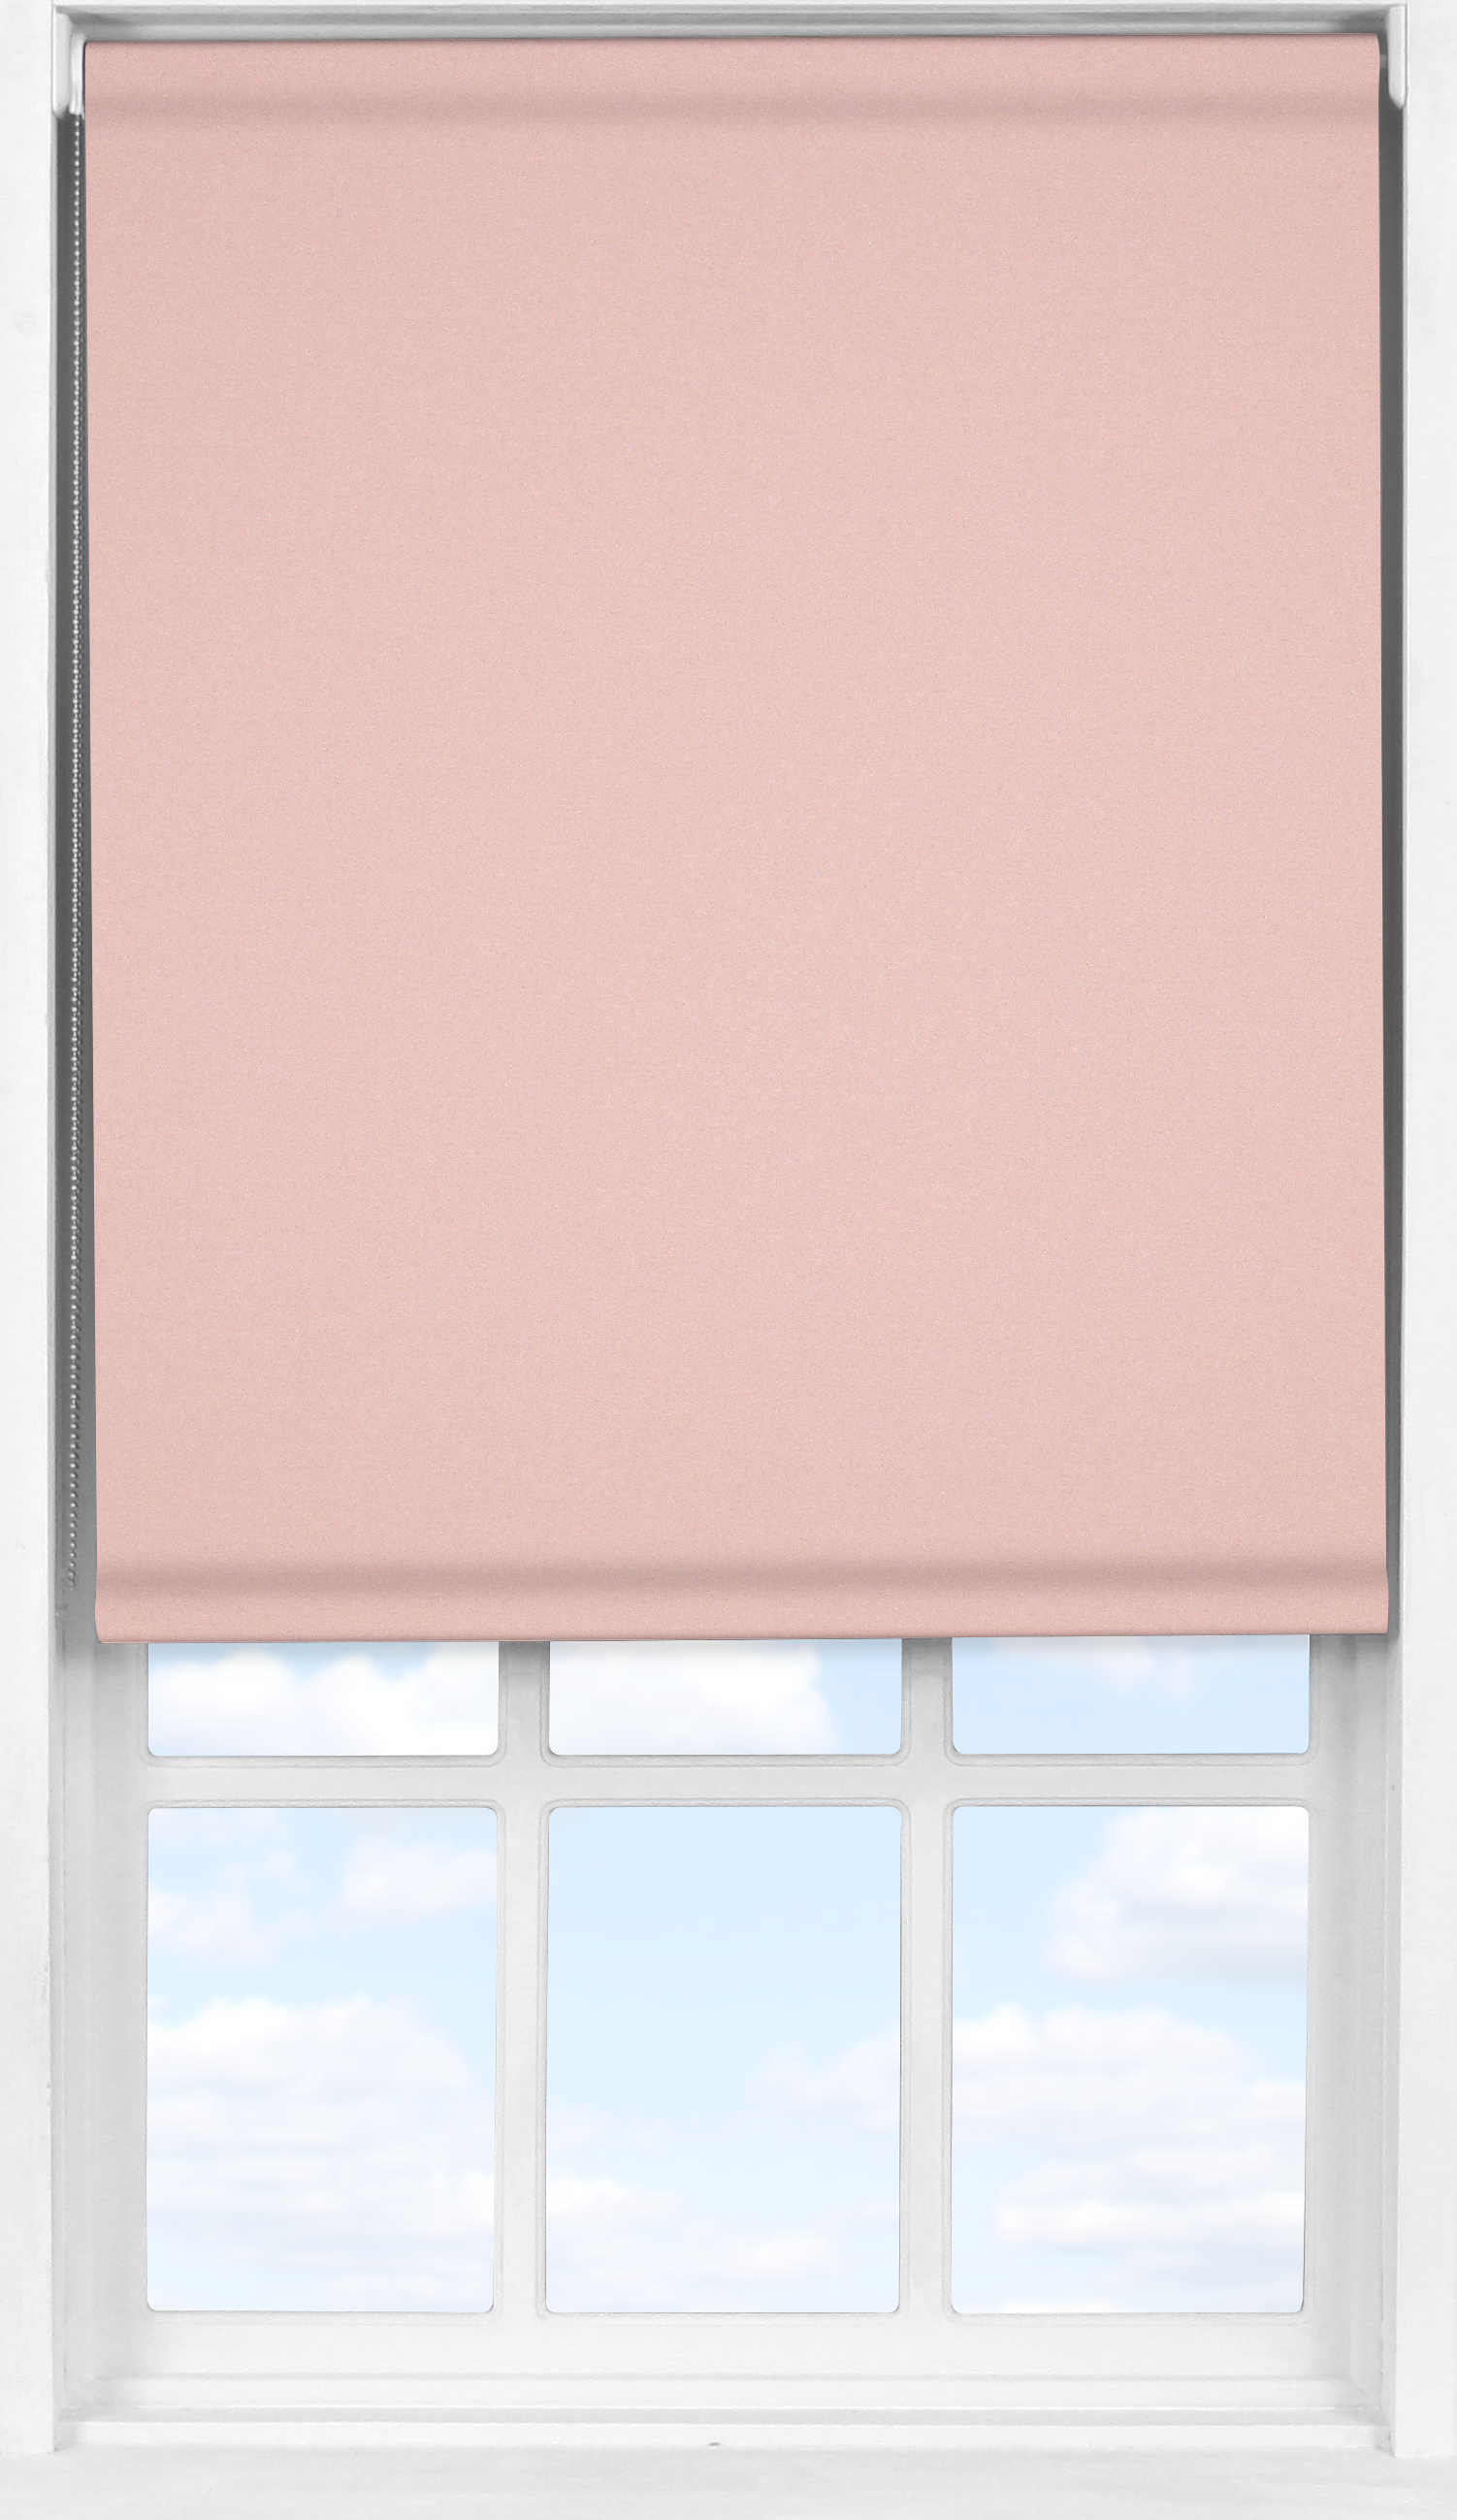 Easifit Roller Blind in Mallow Pink Blackout